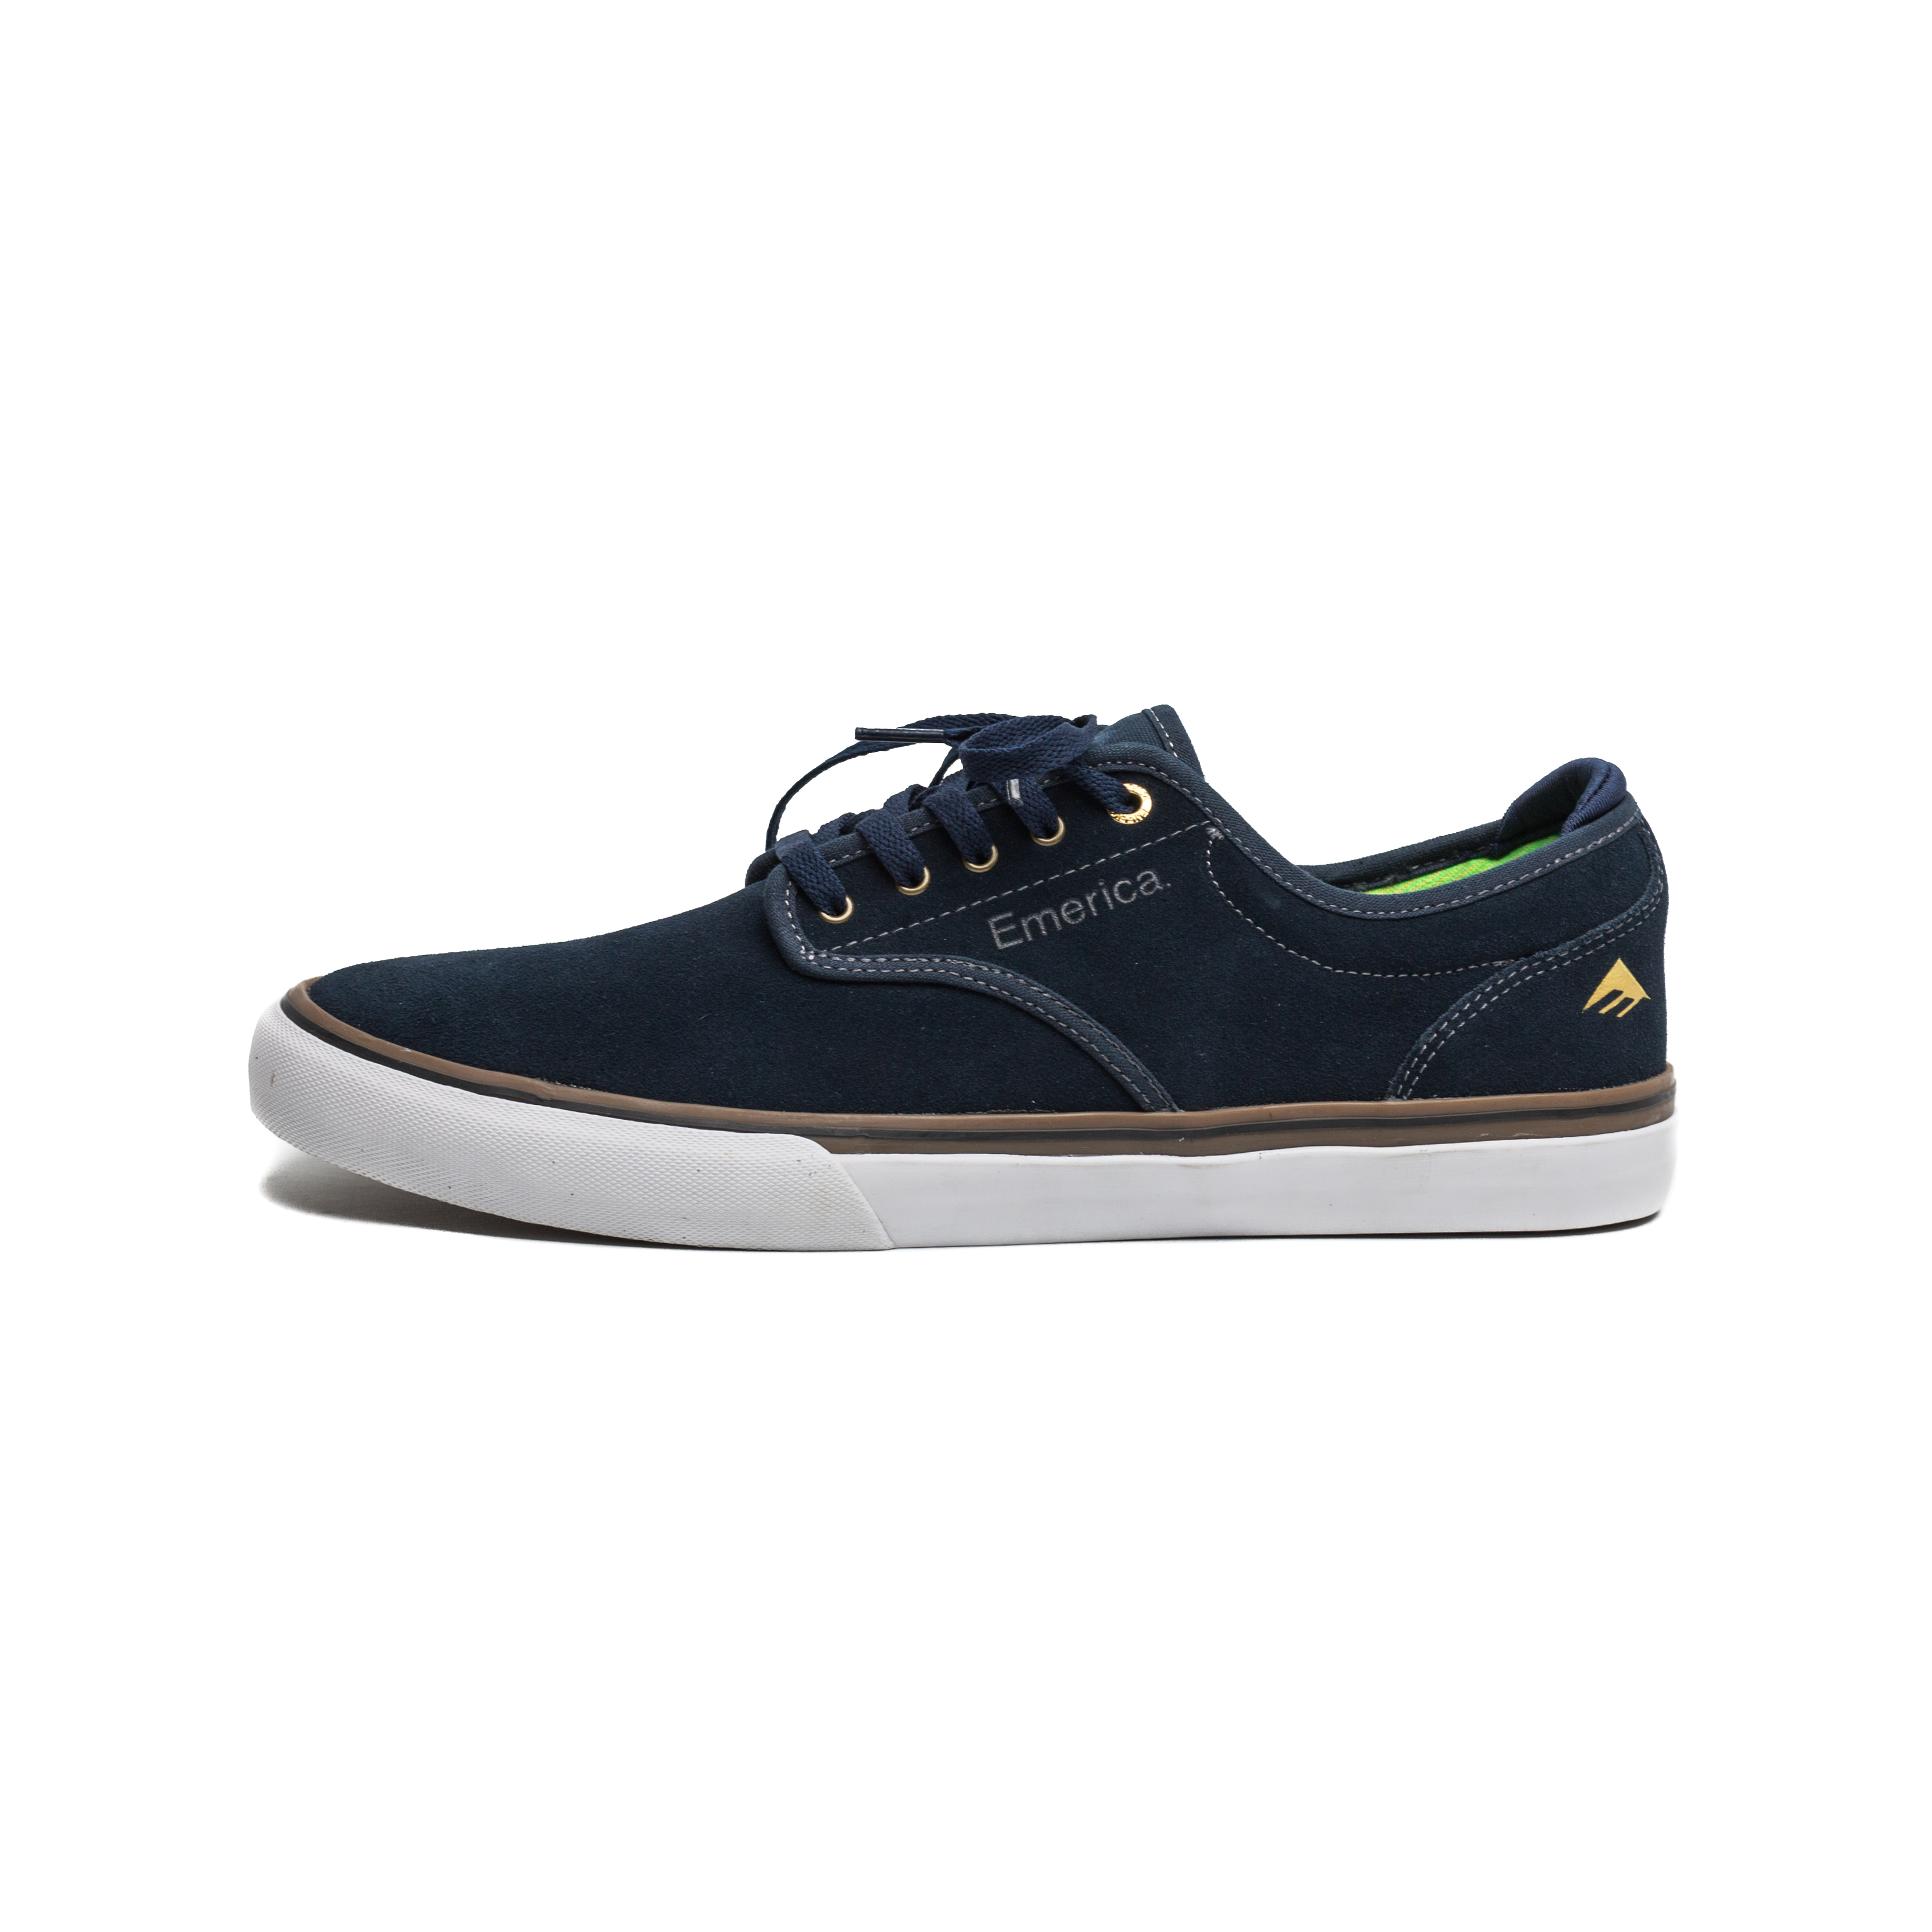 0bf2a6588a Emerica Wino G6 - Weartested - detailed skate shoe reviews